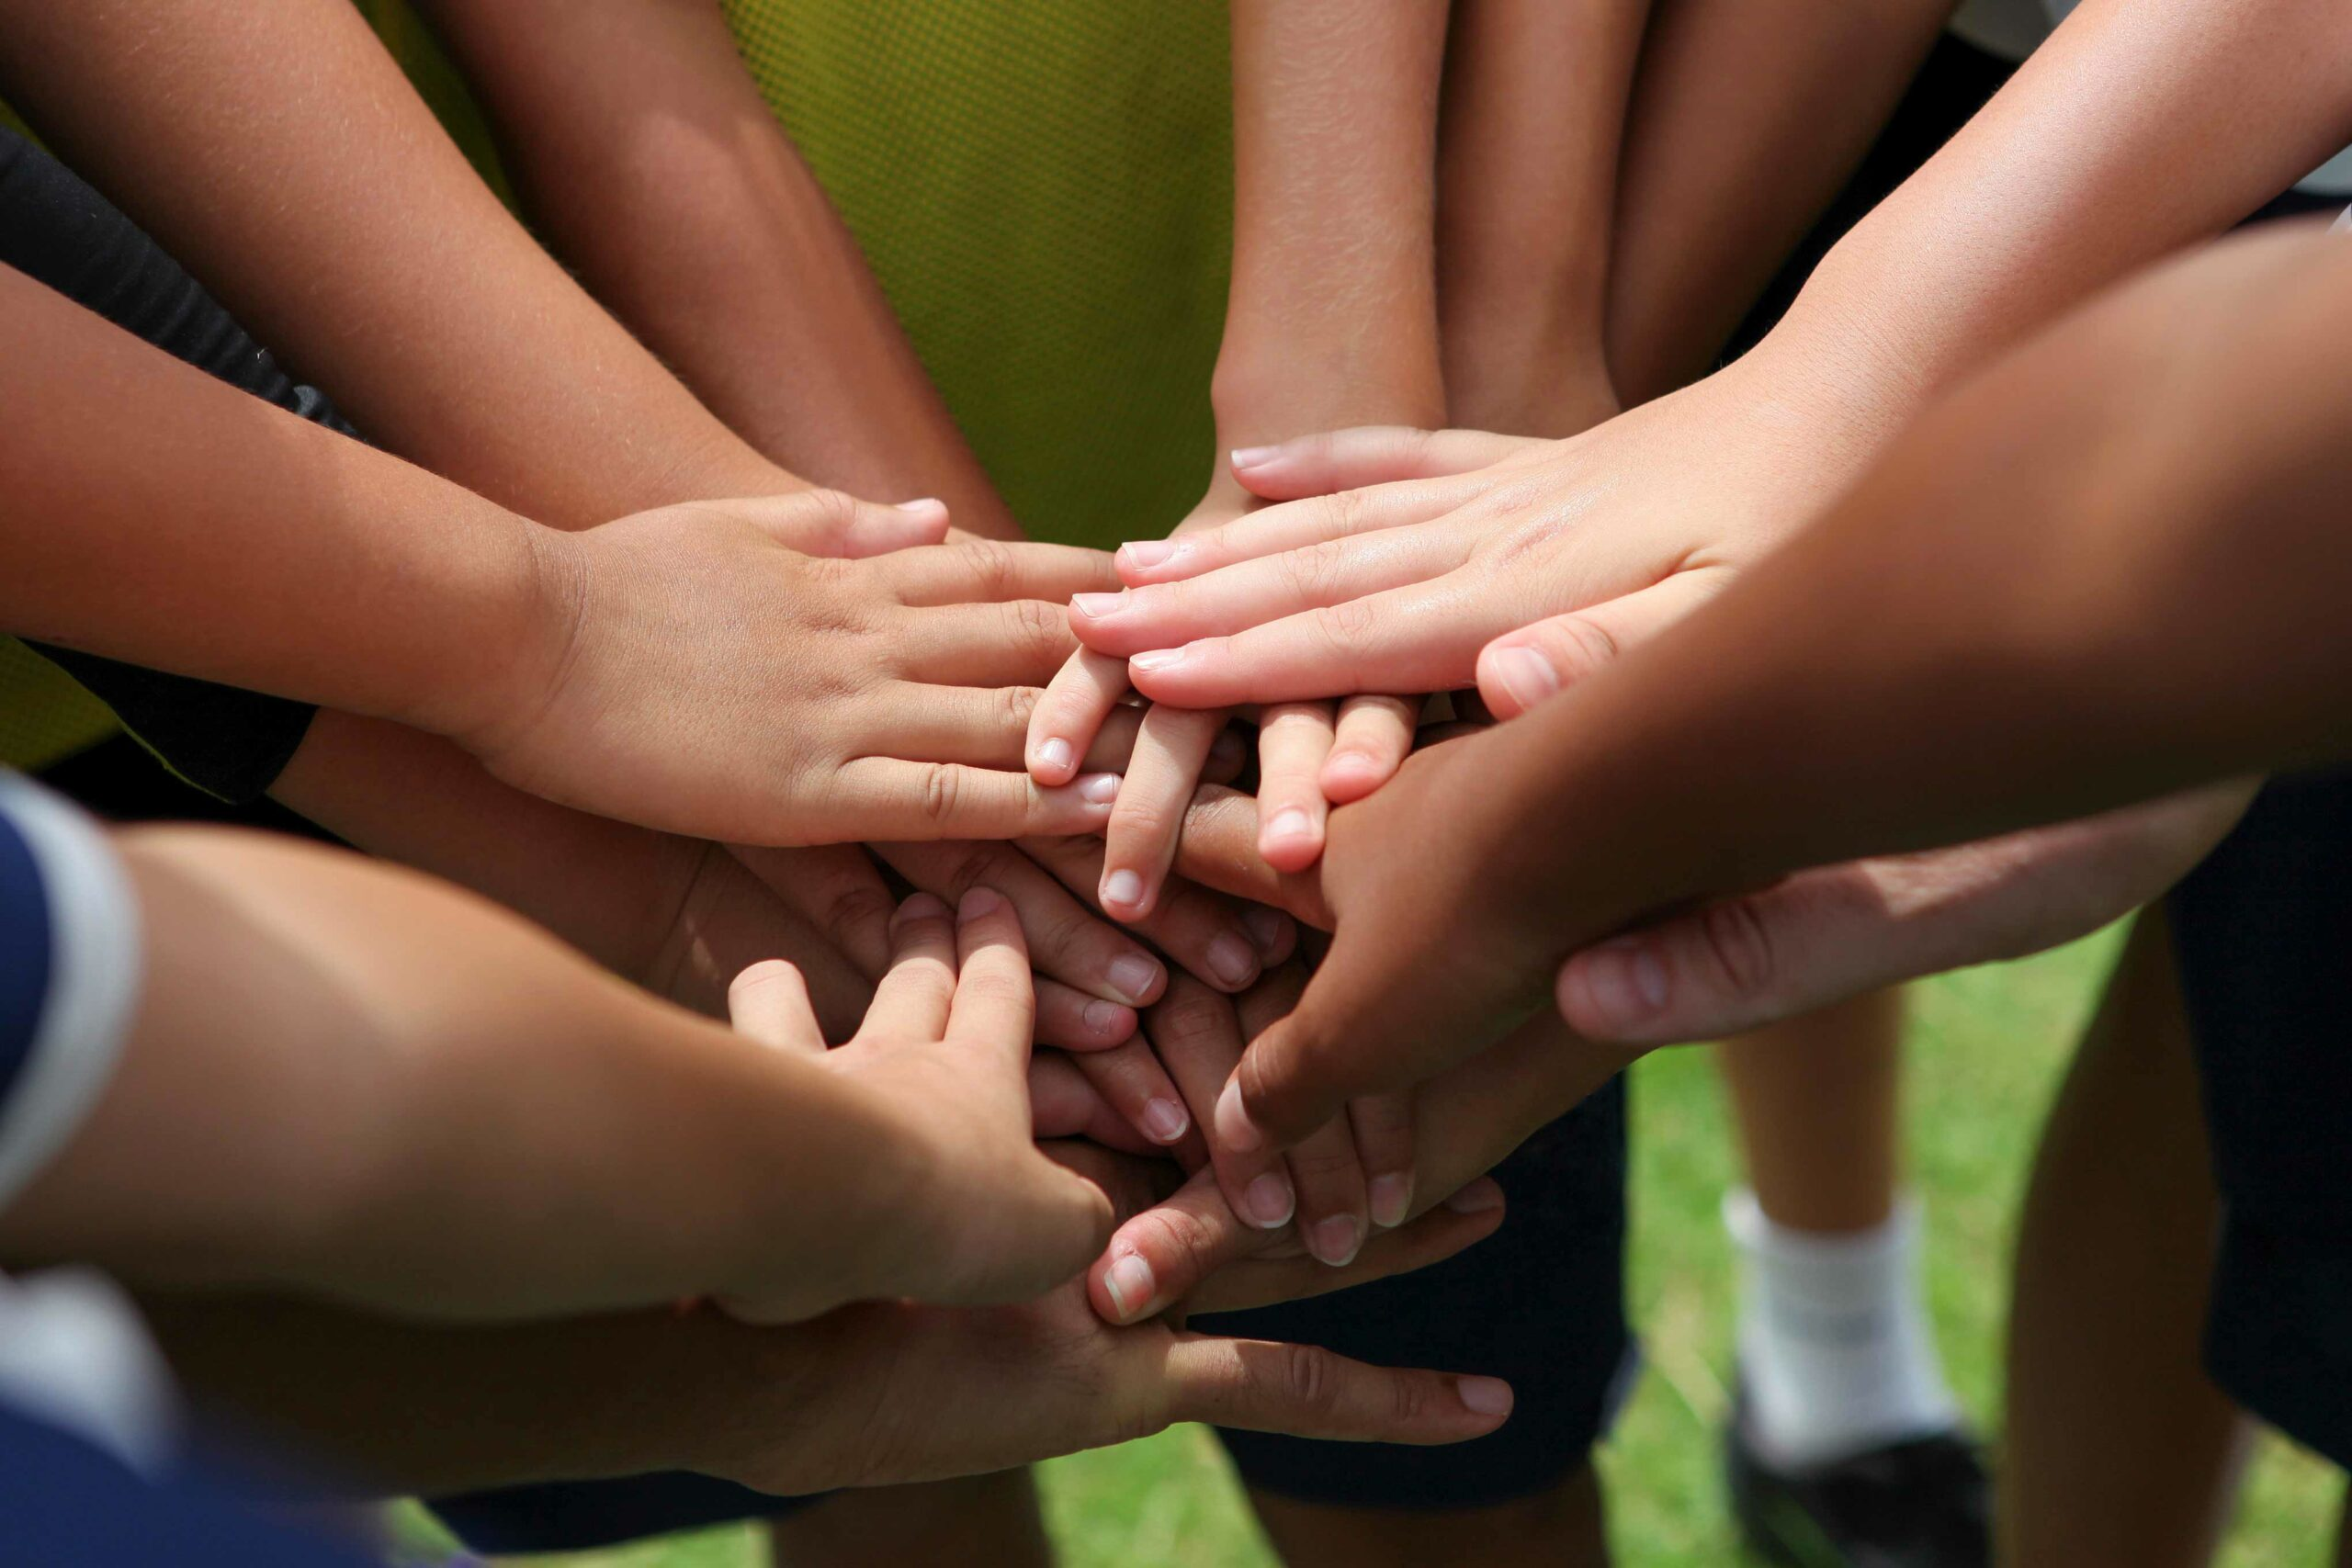 group of young people's hands in the centre of group ready to cheer